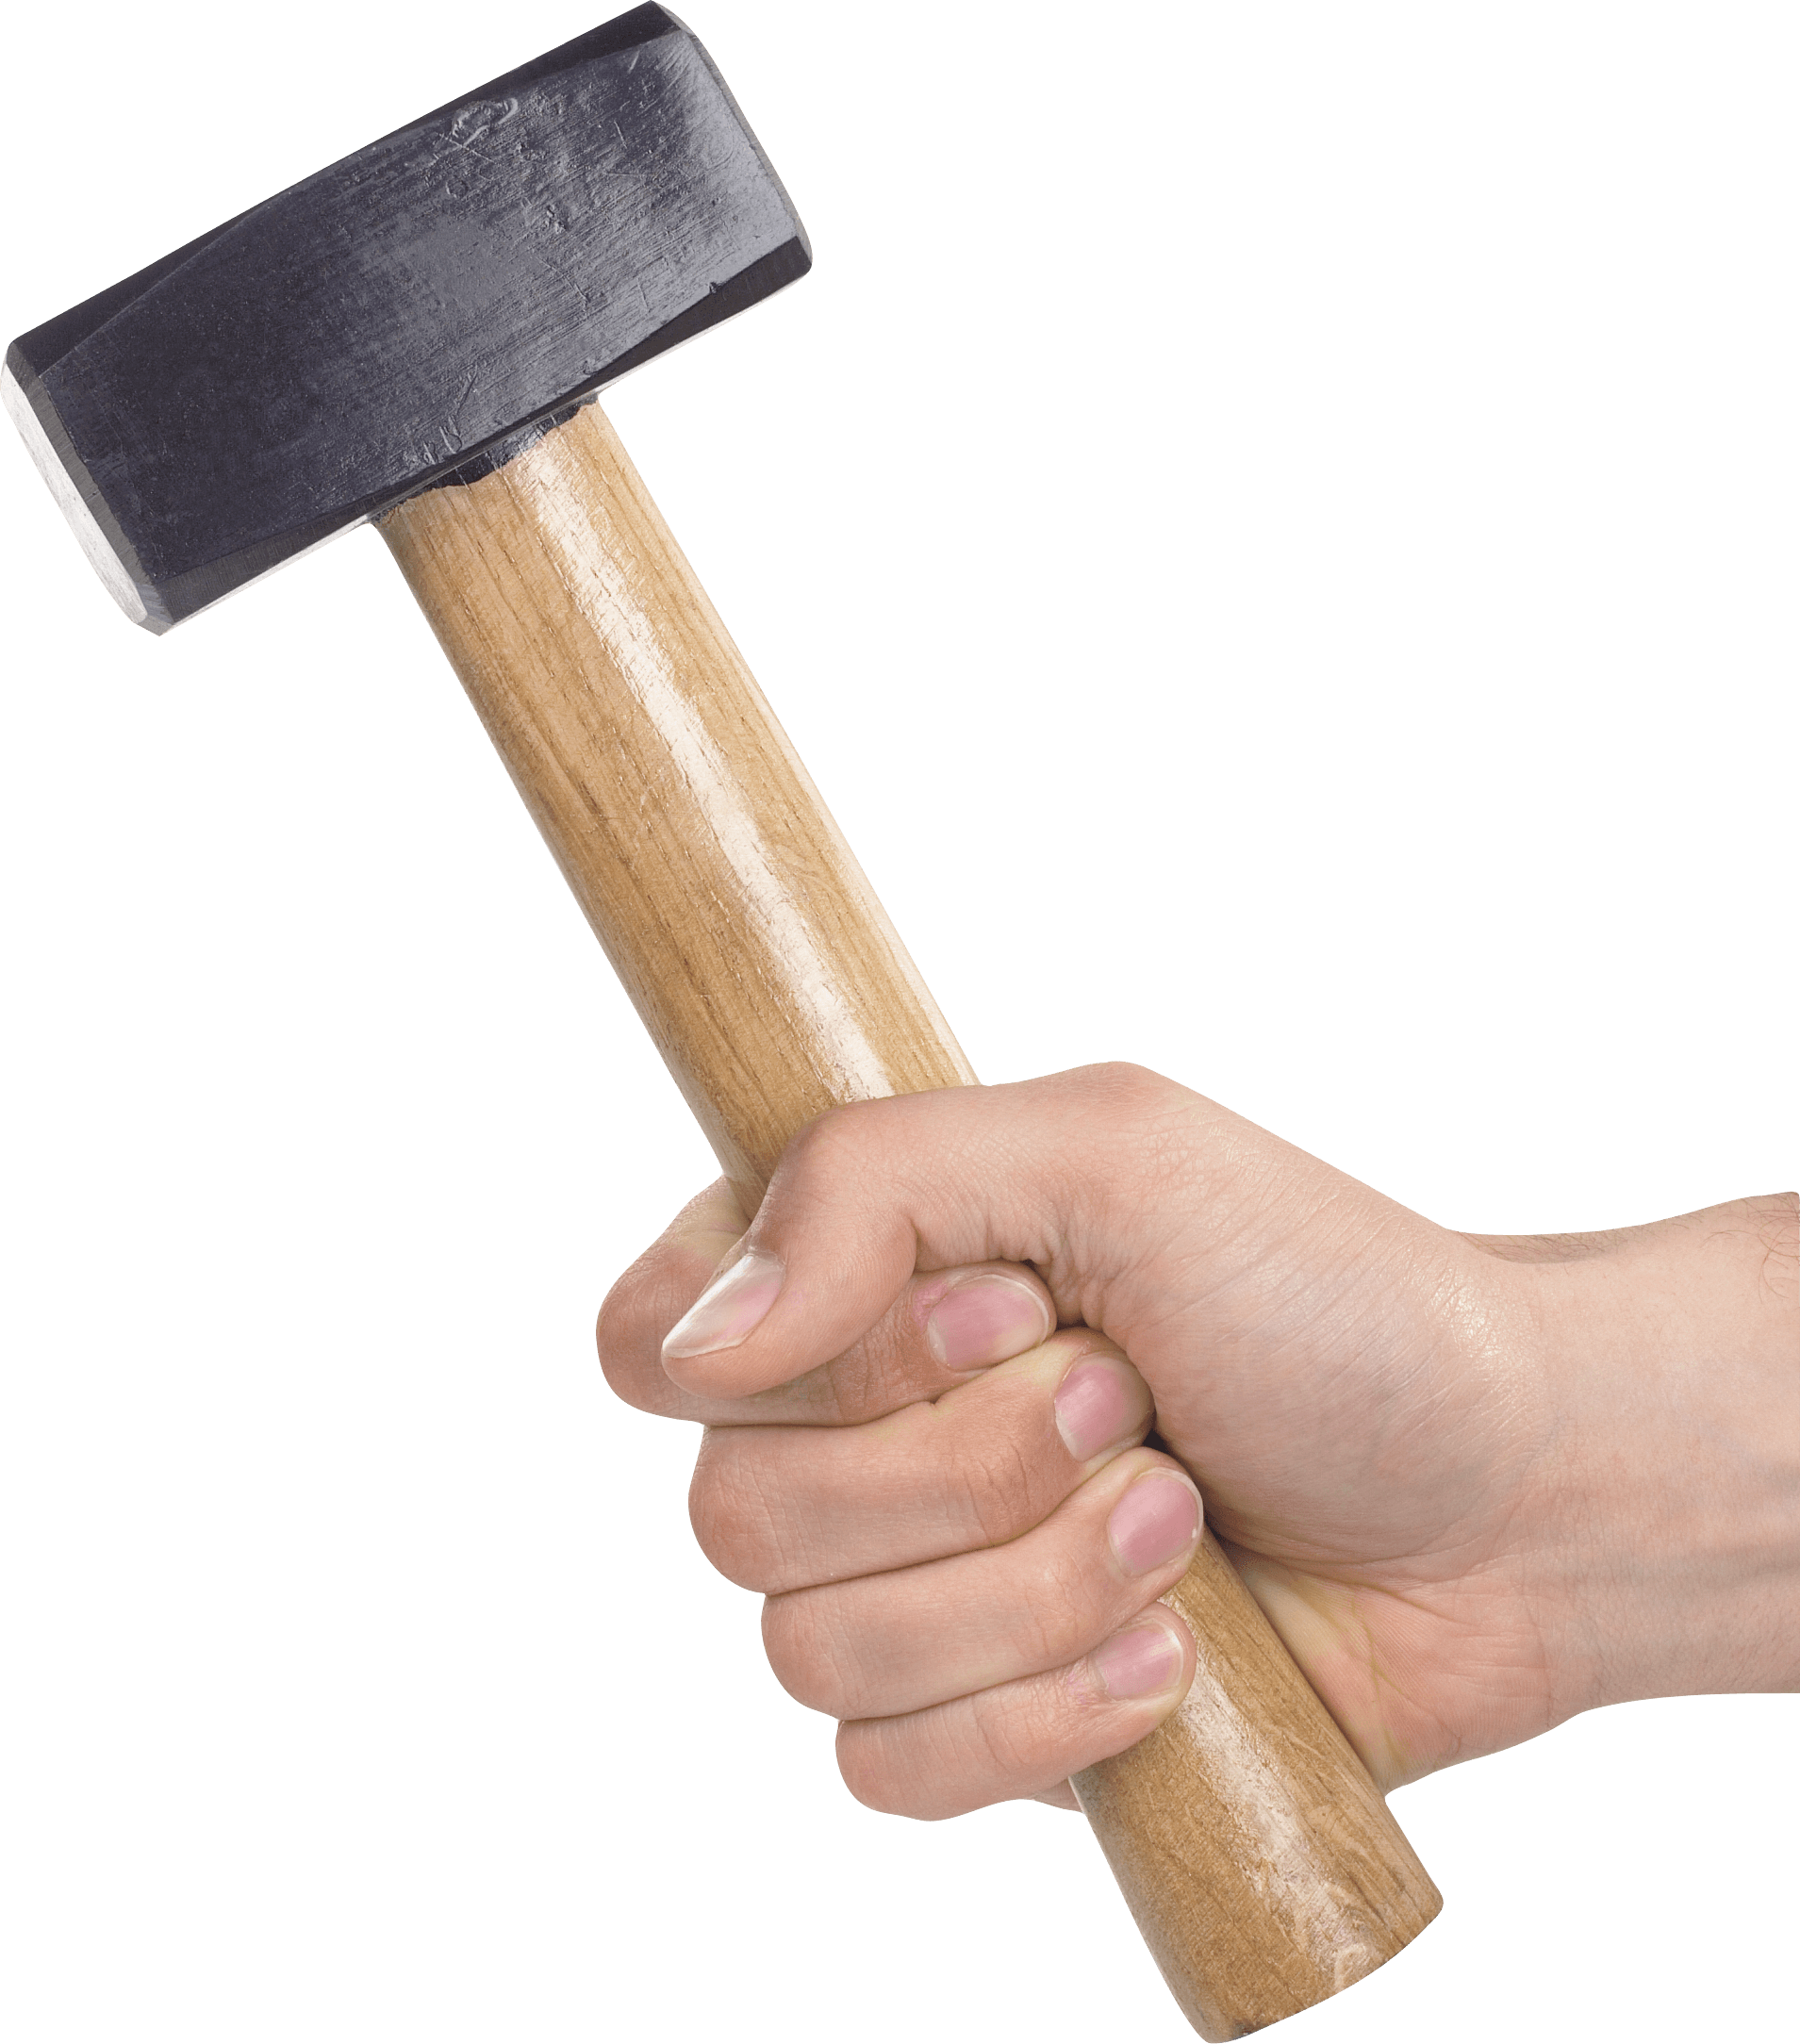 Hammer In Hand Png Image PNG Image